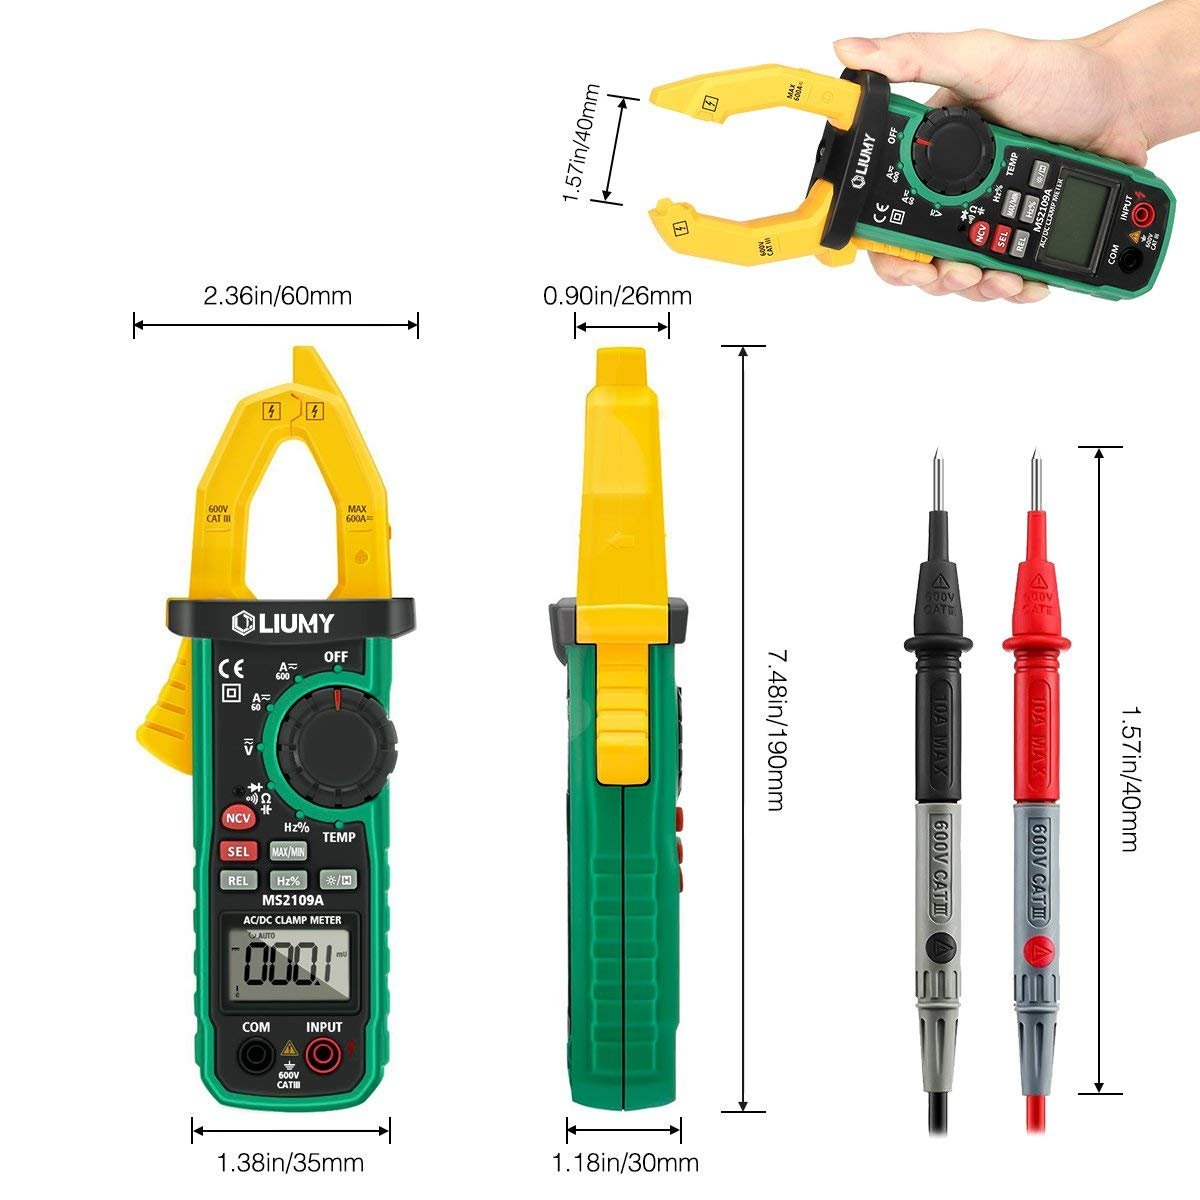 Digital Clamp Meter, LIUMY Auto-Ranging AC/DC Clamp Multimeter with Analog Function, NCV, Work Light/ Memory peak, Non- contact Voltages/ Frequency/ Resistance/ Capacitance/ Connections/ Diodes by Liumy (Image #2)